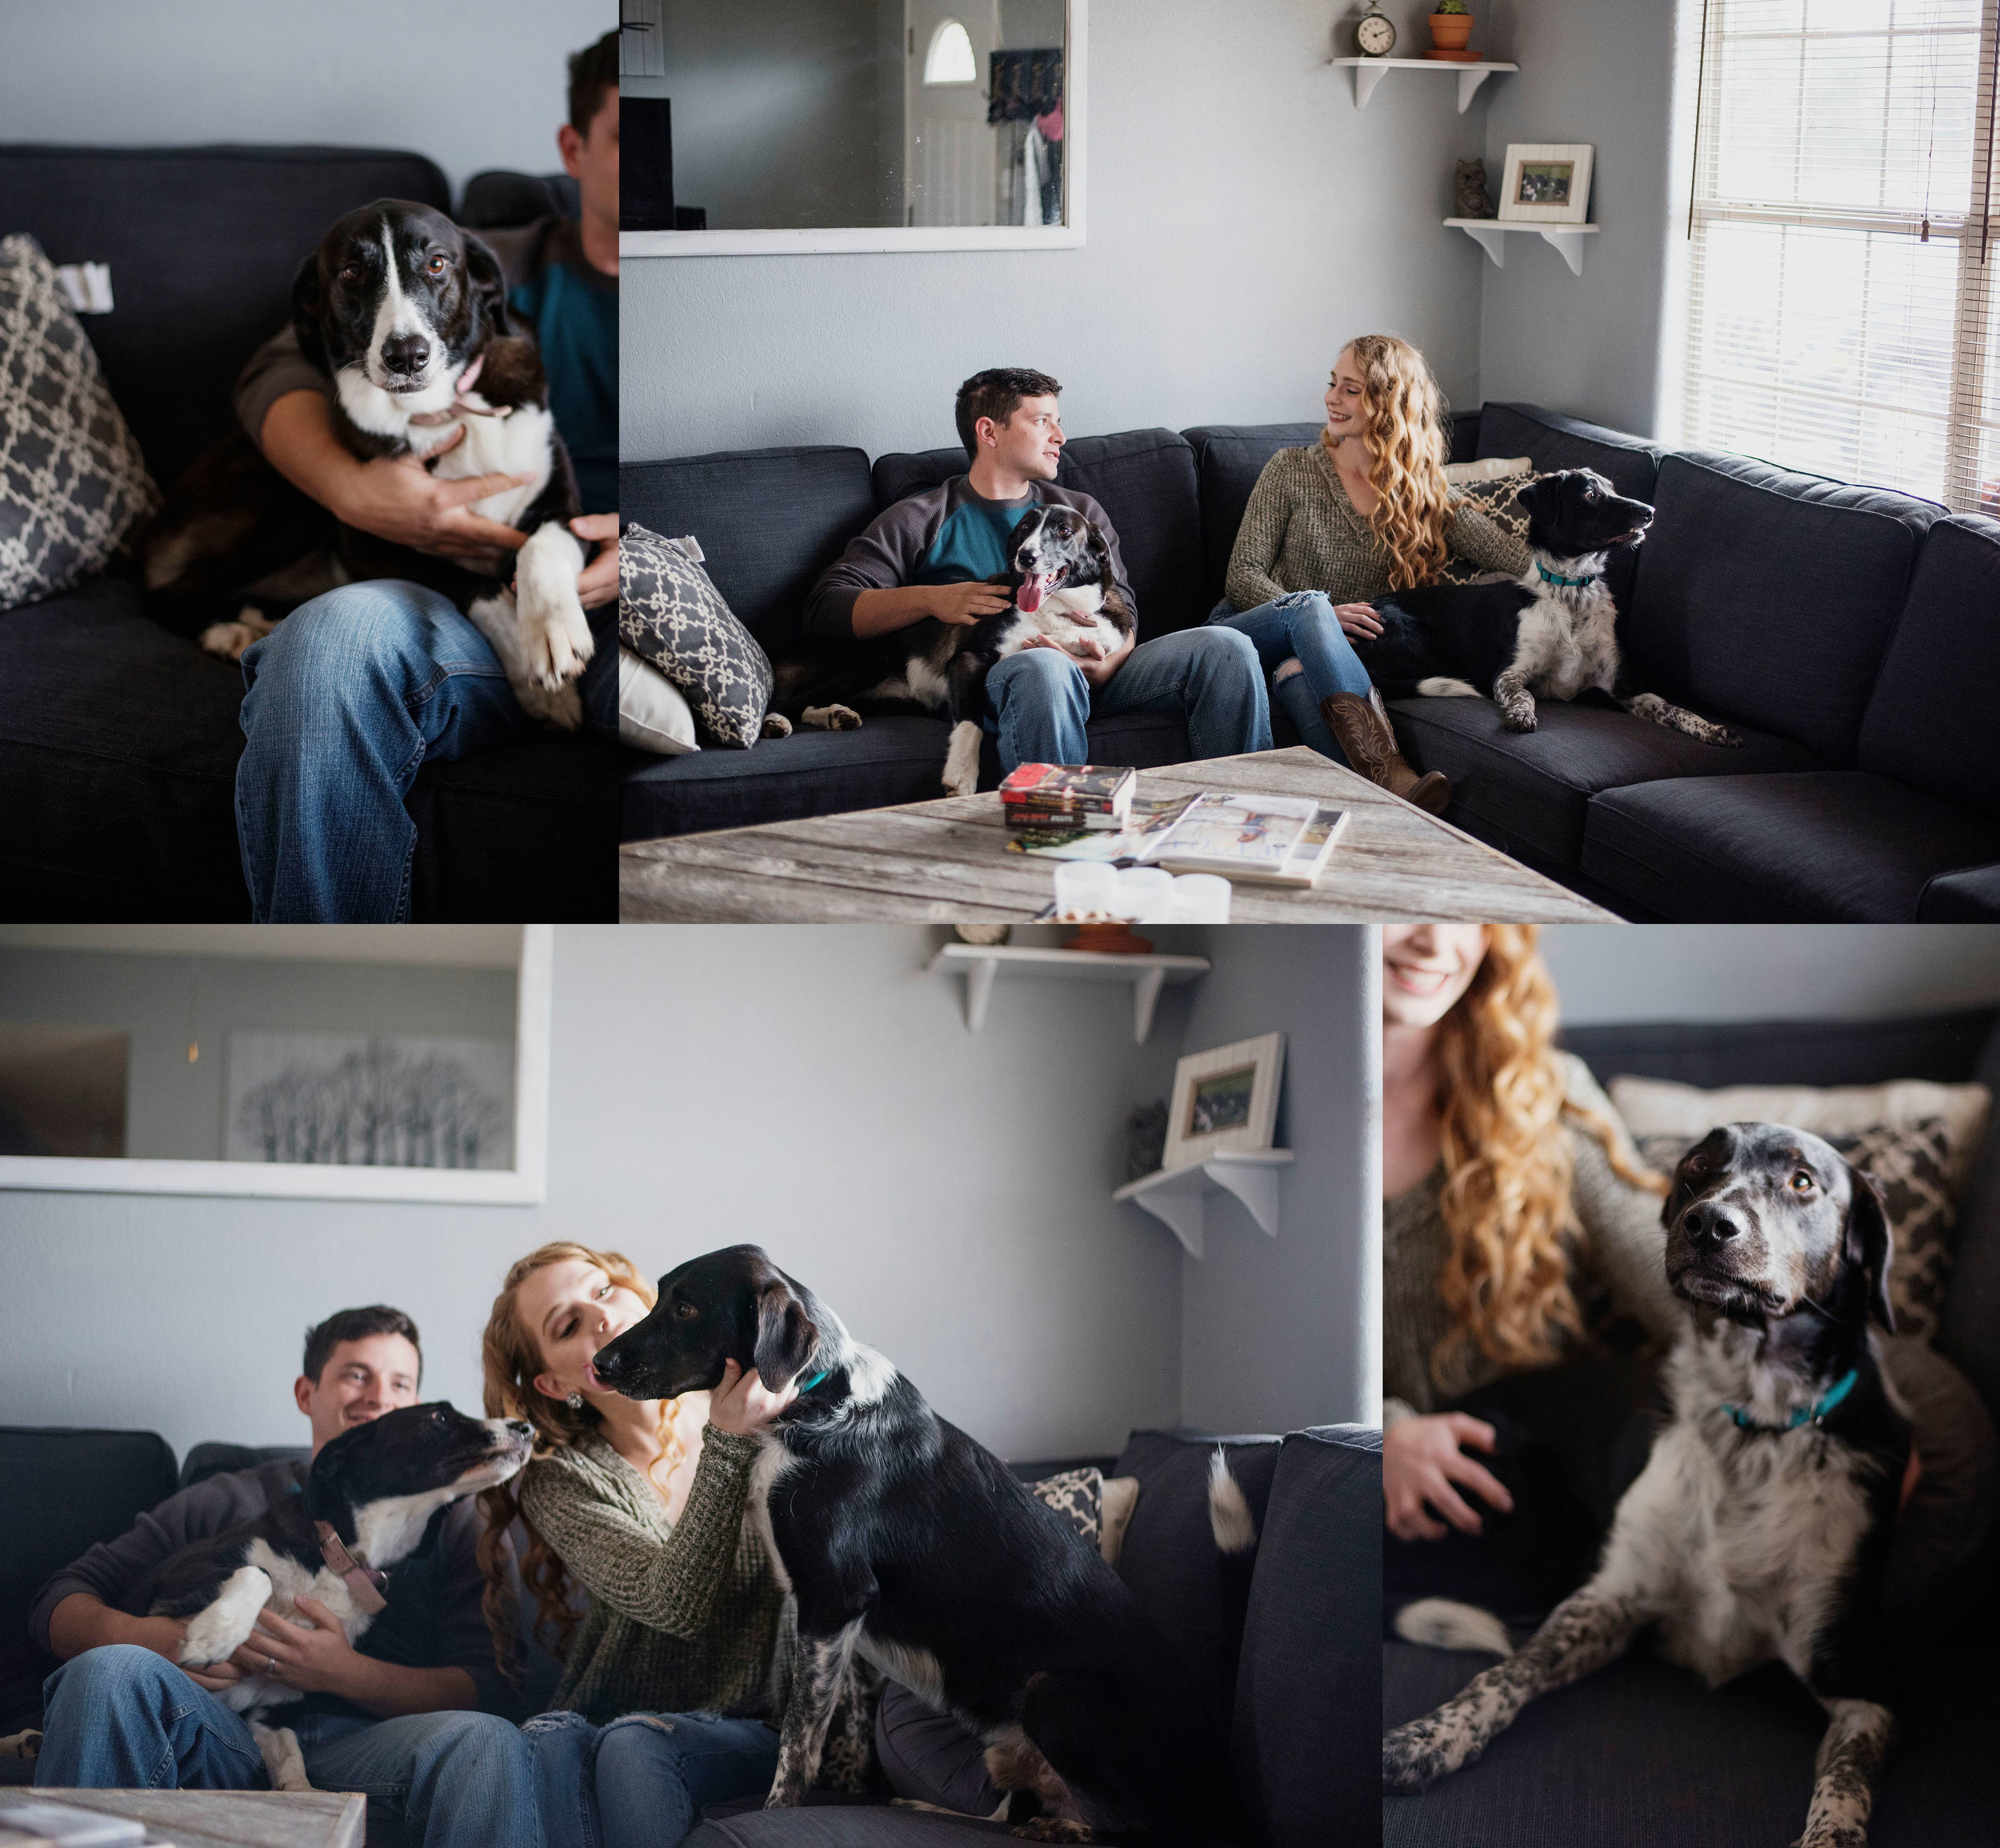 EffJay Photography Lees Summit Family Photographer inhome Lifestyle Session with dogs006.jpg